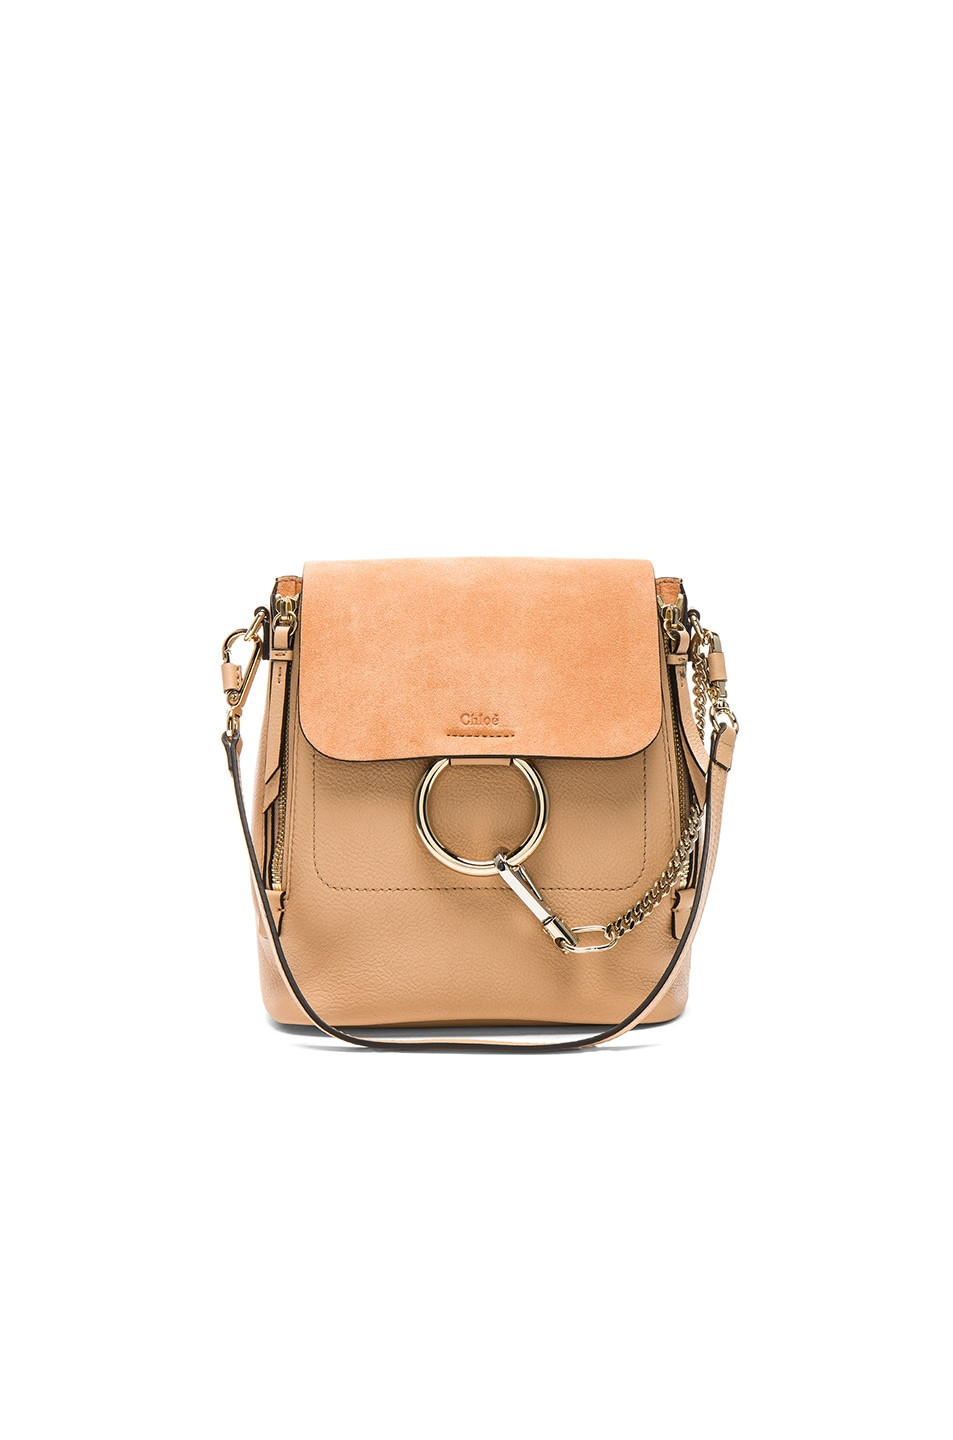 a18ce0dfe3372 Image 1 of Chloe Small Faye Suede & Calfskin Backpack in Blush Nude